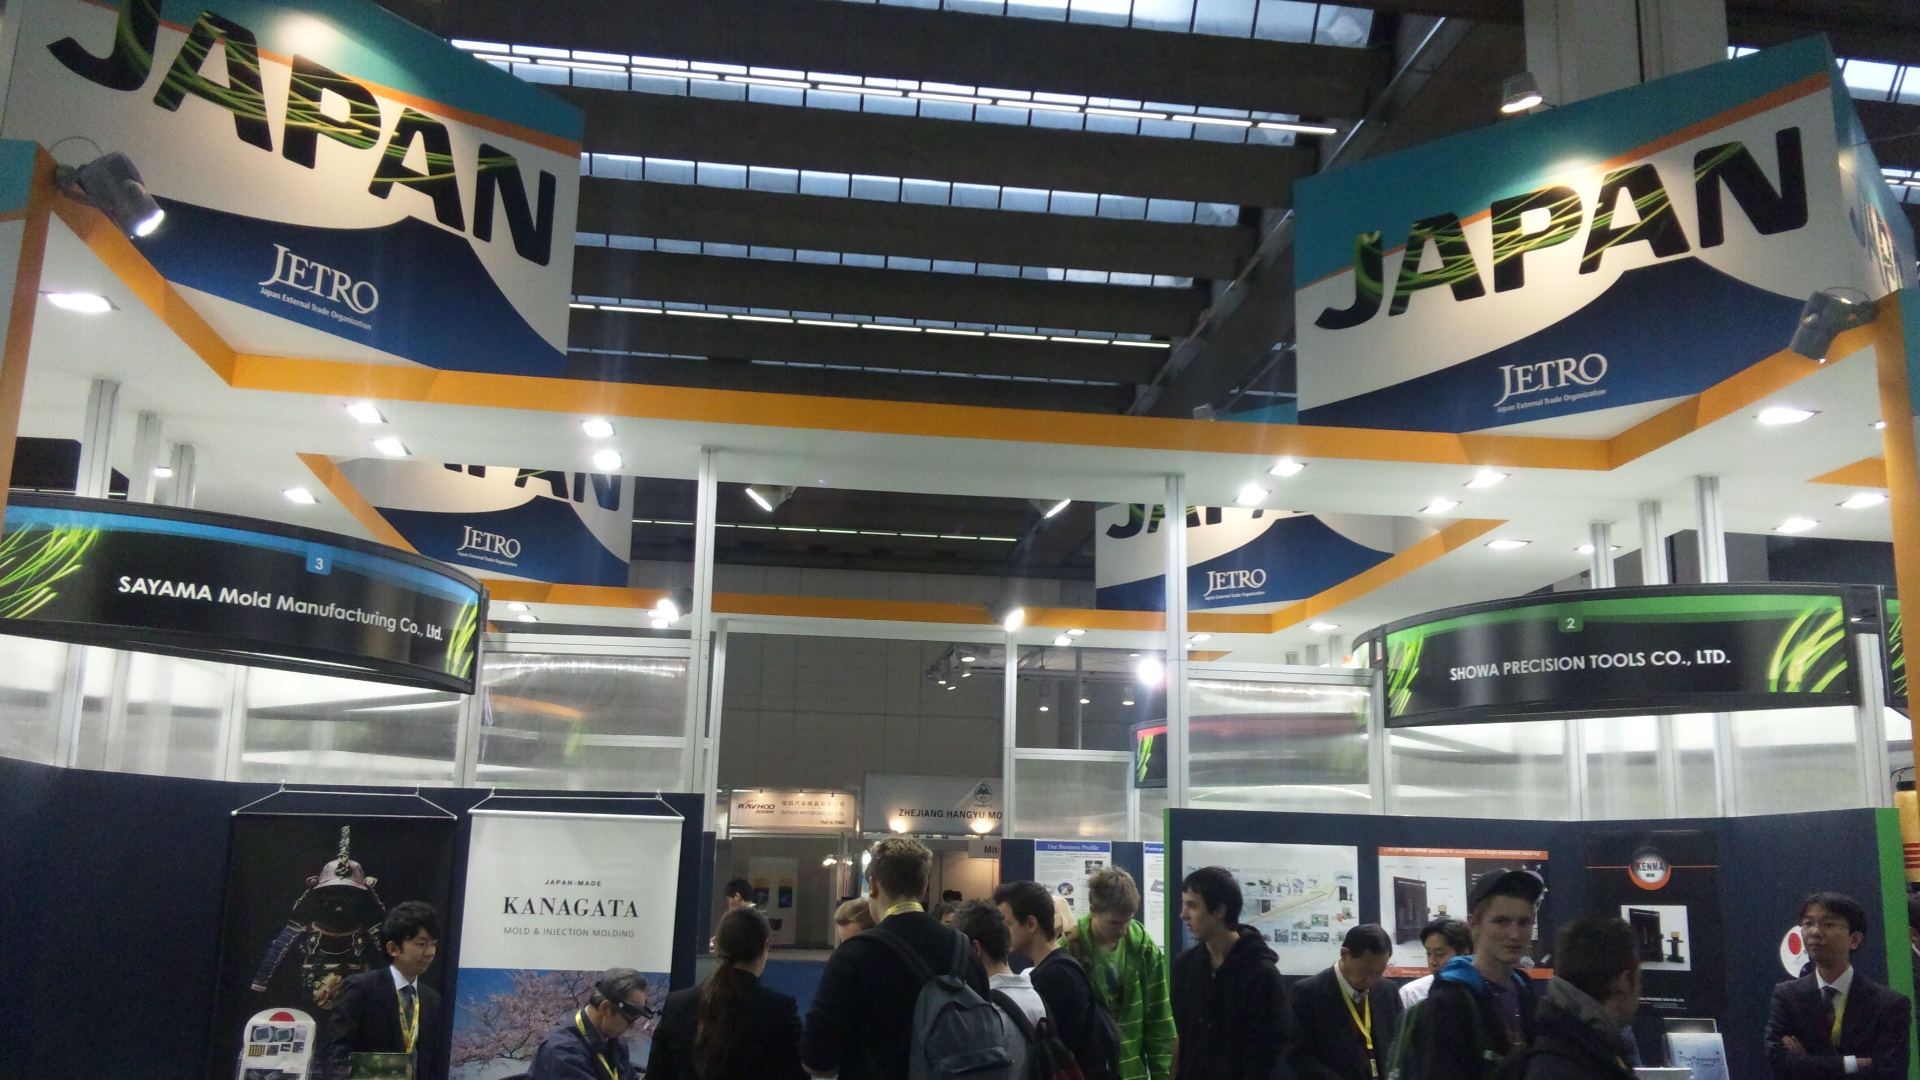 Die/Mold] We produced the exhibition booth of Alcom inc in